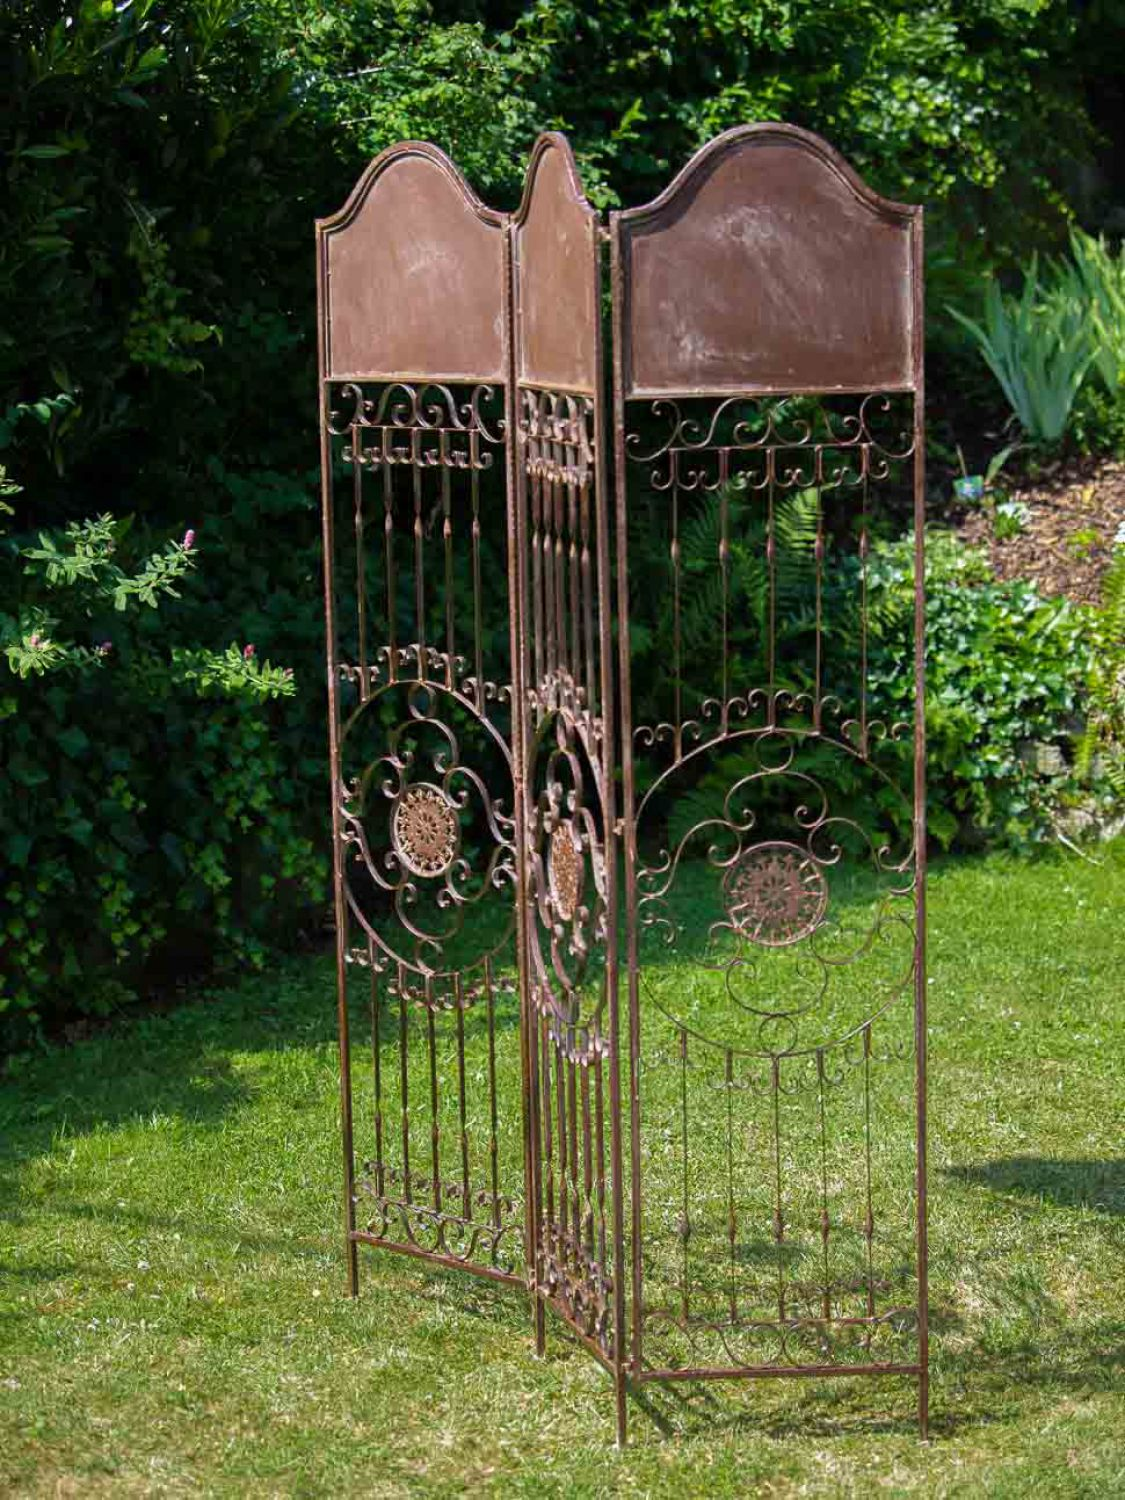 Decorative Screen  Antique Style Trellis  Wrought Iron. Rooms To Go Outdoor Furniture. Tri Fold Room Divider. Harp Decoration. Stars And Stripes Home Decor. Industrial Room Dividers. Childrens Bedroom Decor. Cheap Living Room Decor. Home Decorators Coupons